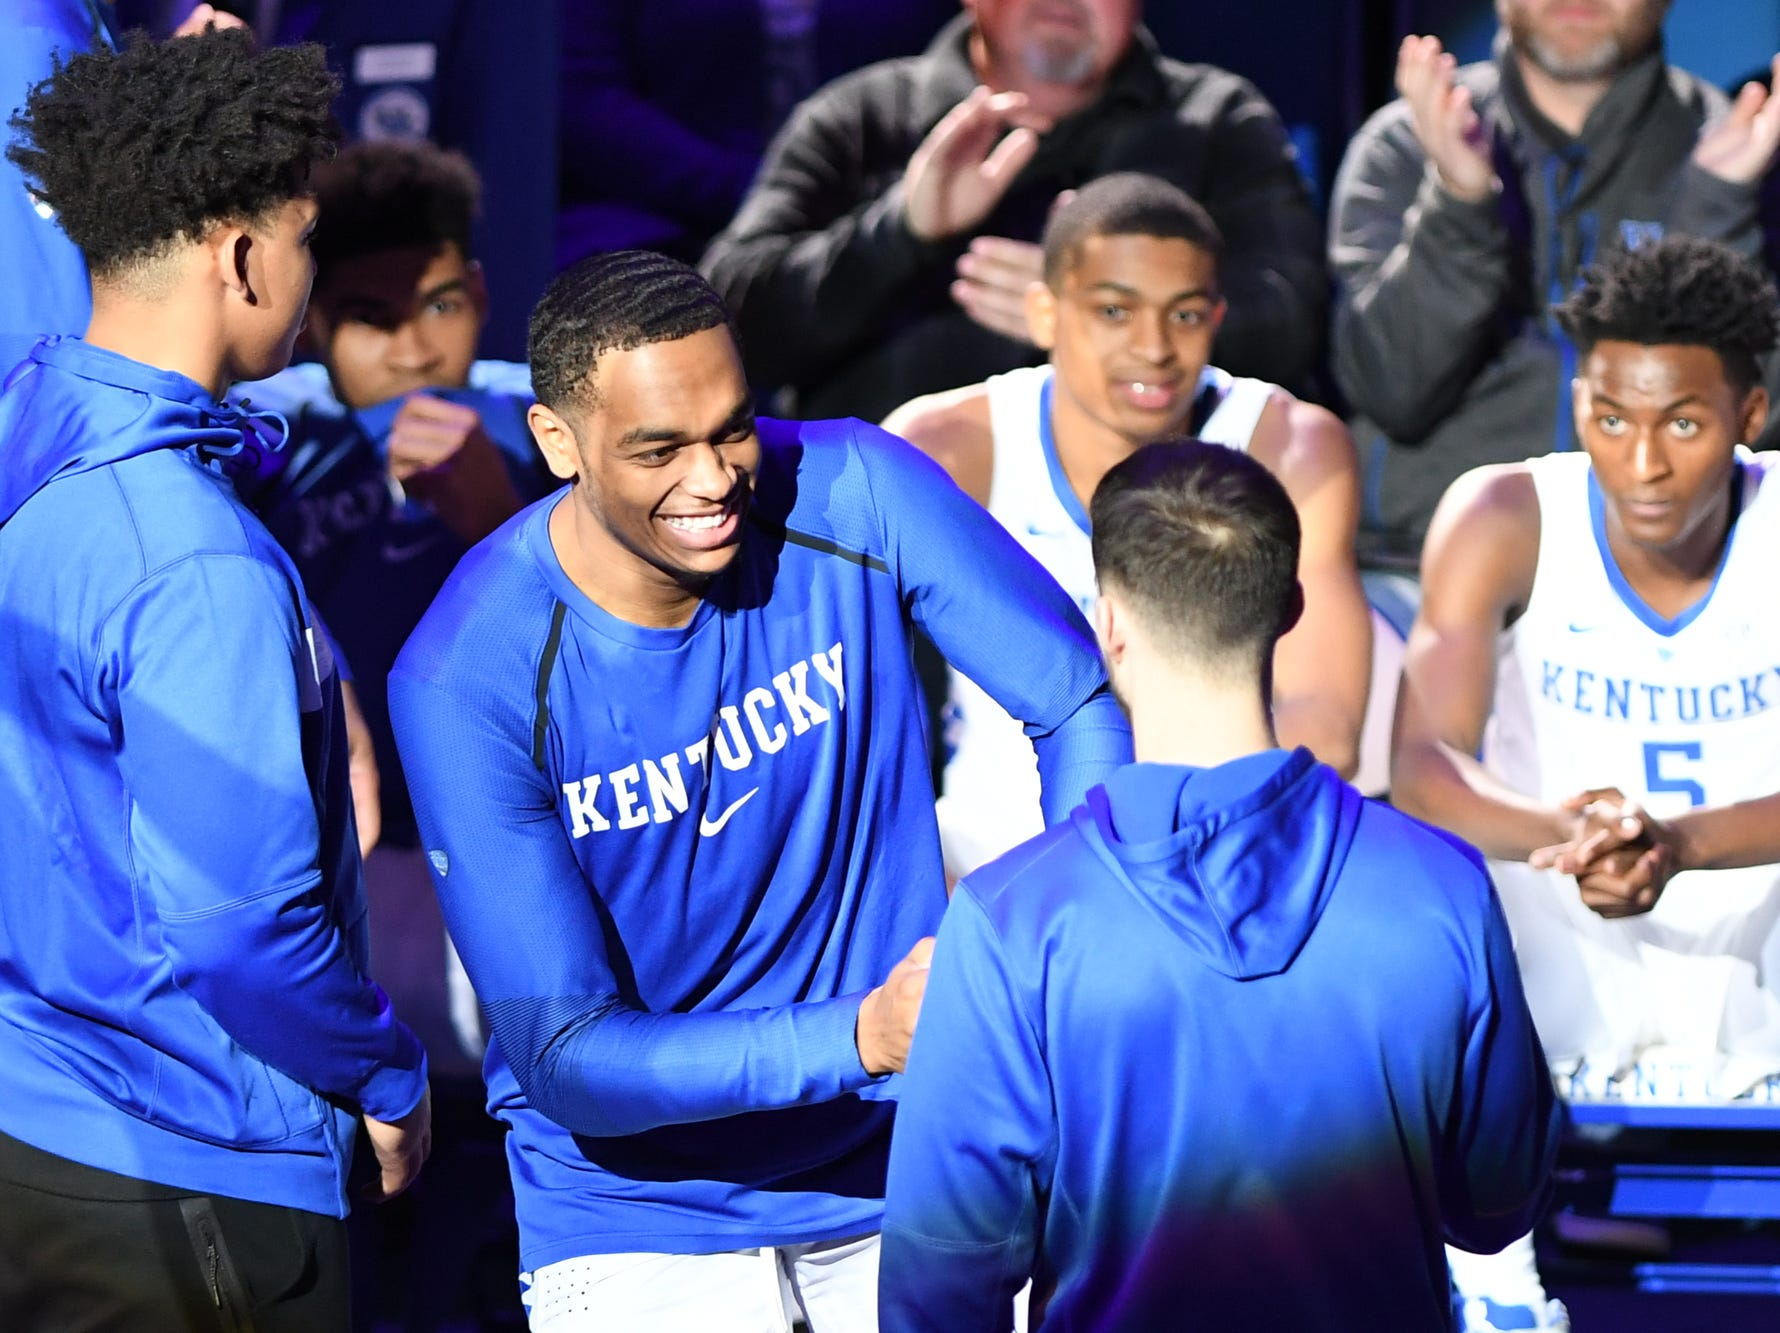 UK F PJ Washington is introduced before the University of Kentucky mens basketball game against North Dakota at Rupp Arena in Lexington, Kentucky on Wednesday, November 14, 2018.